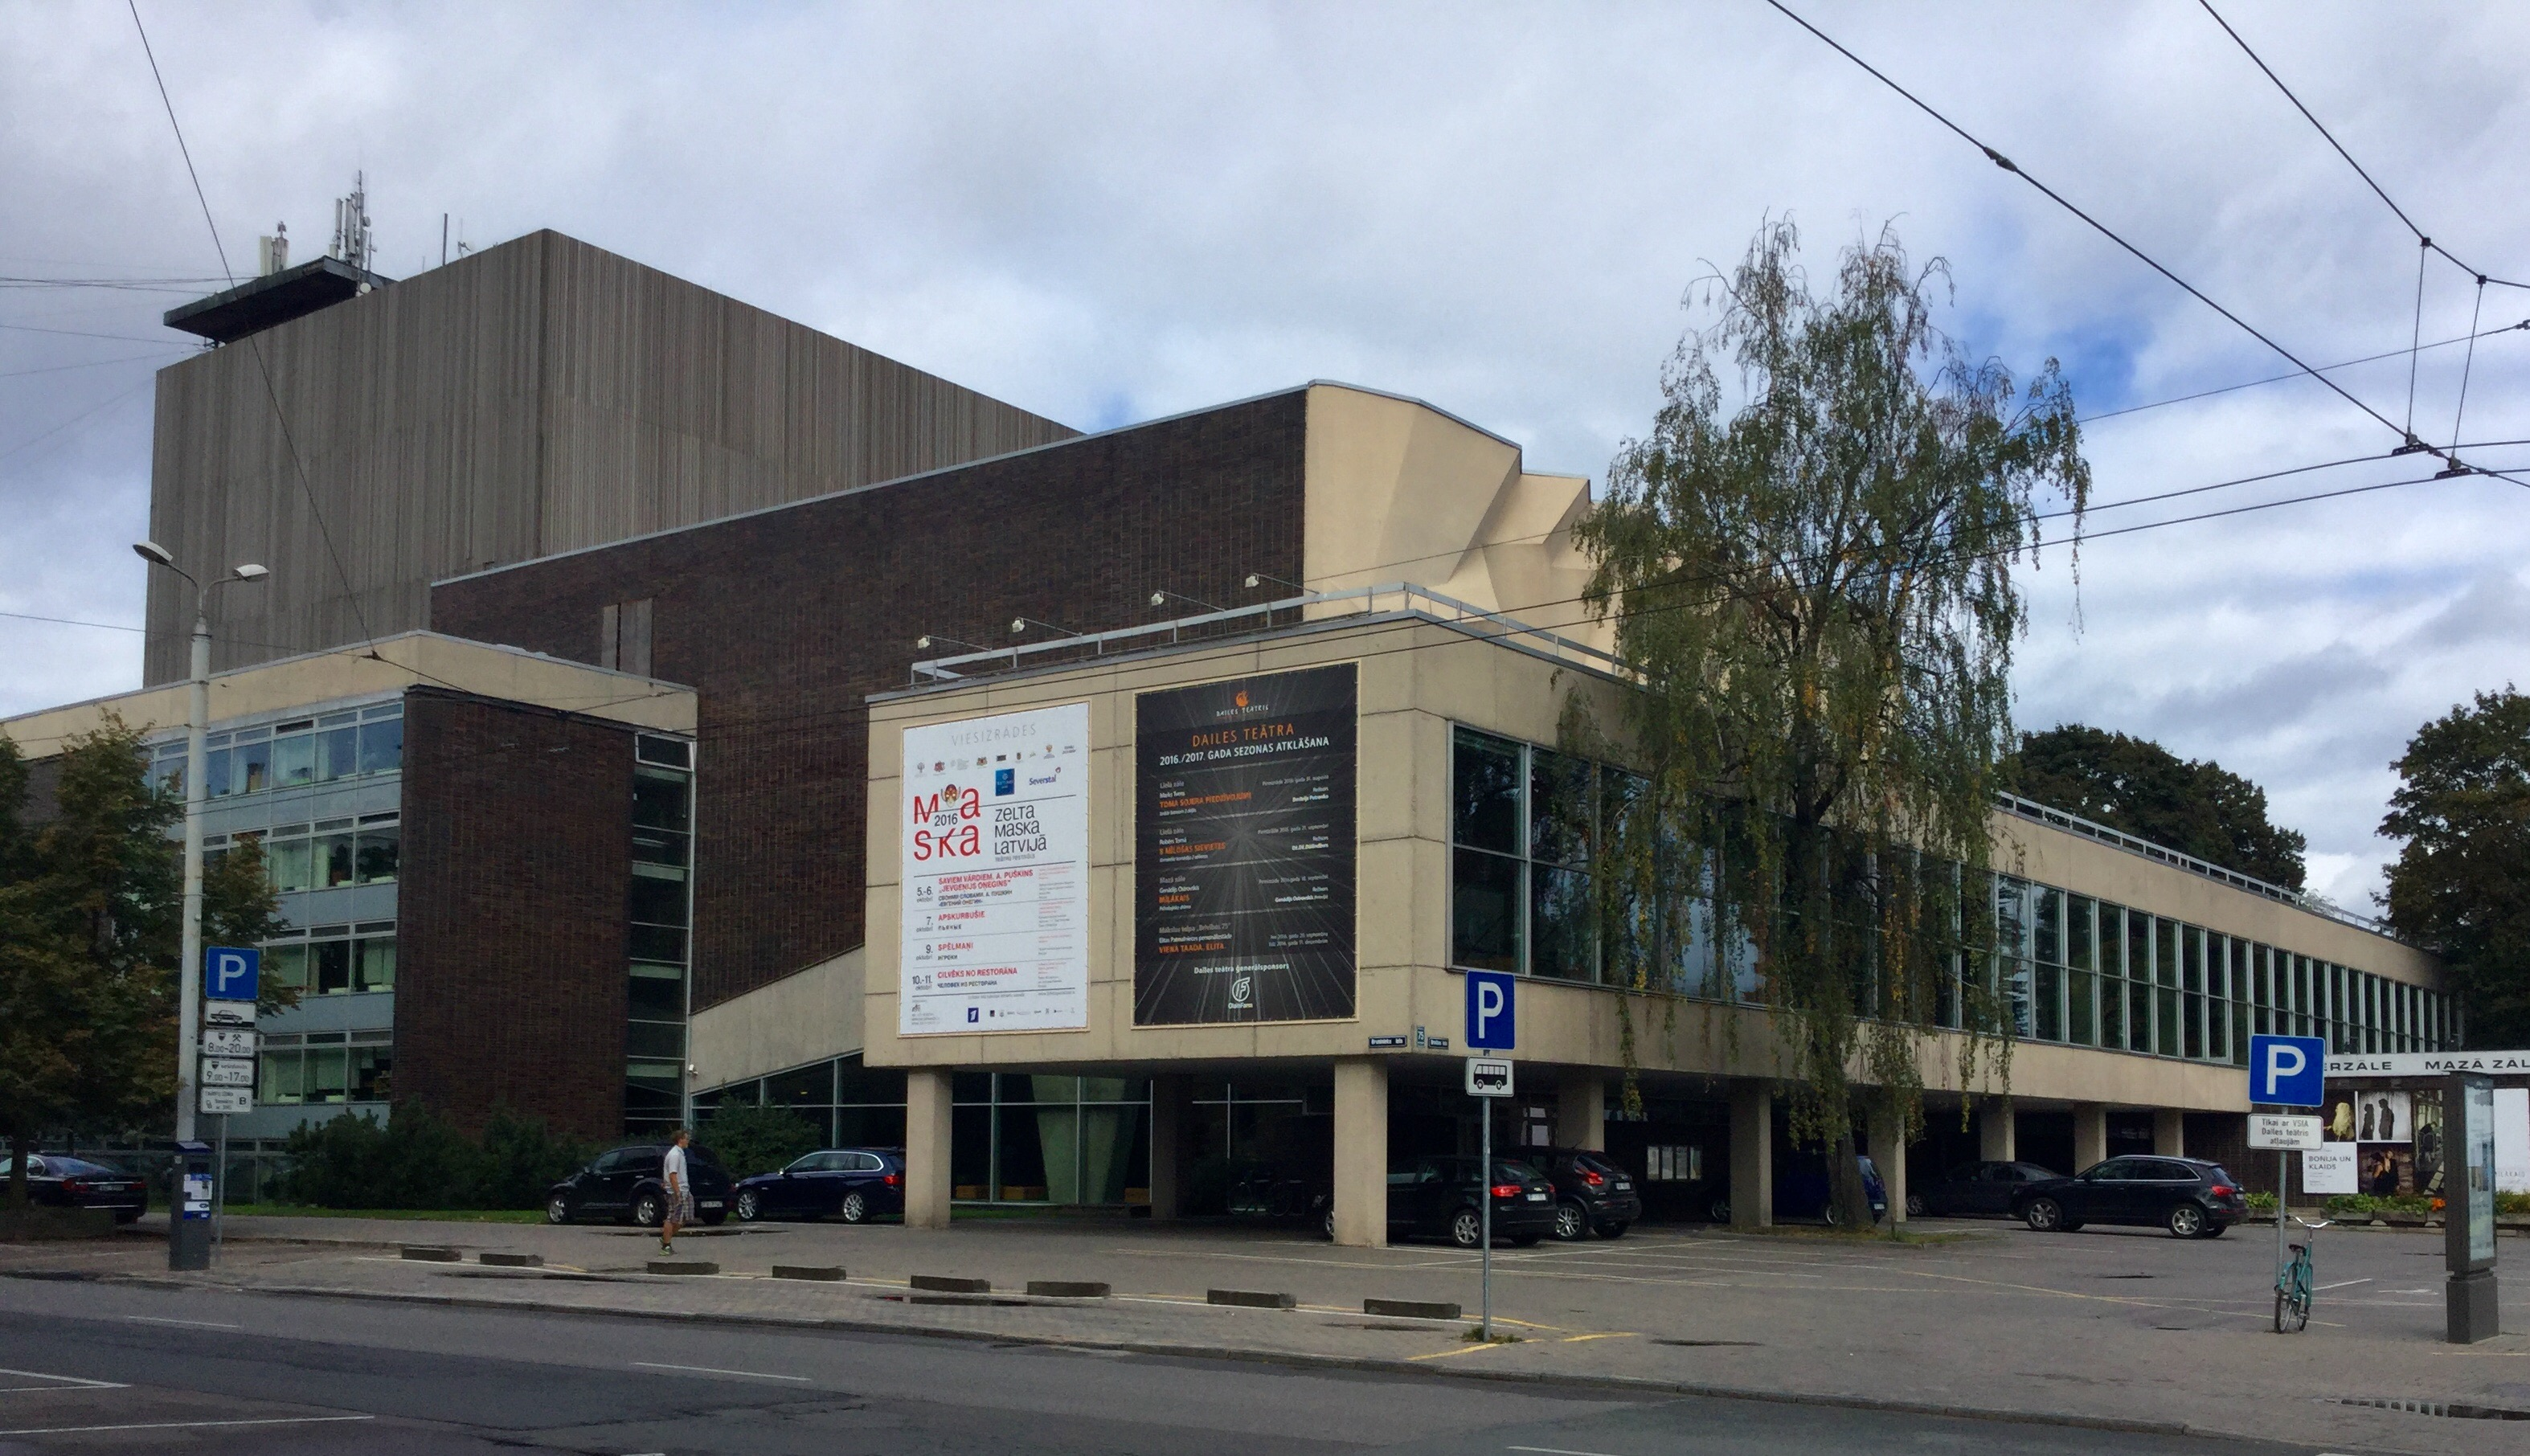 Dailes Teater